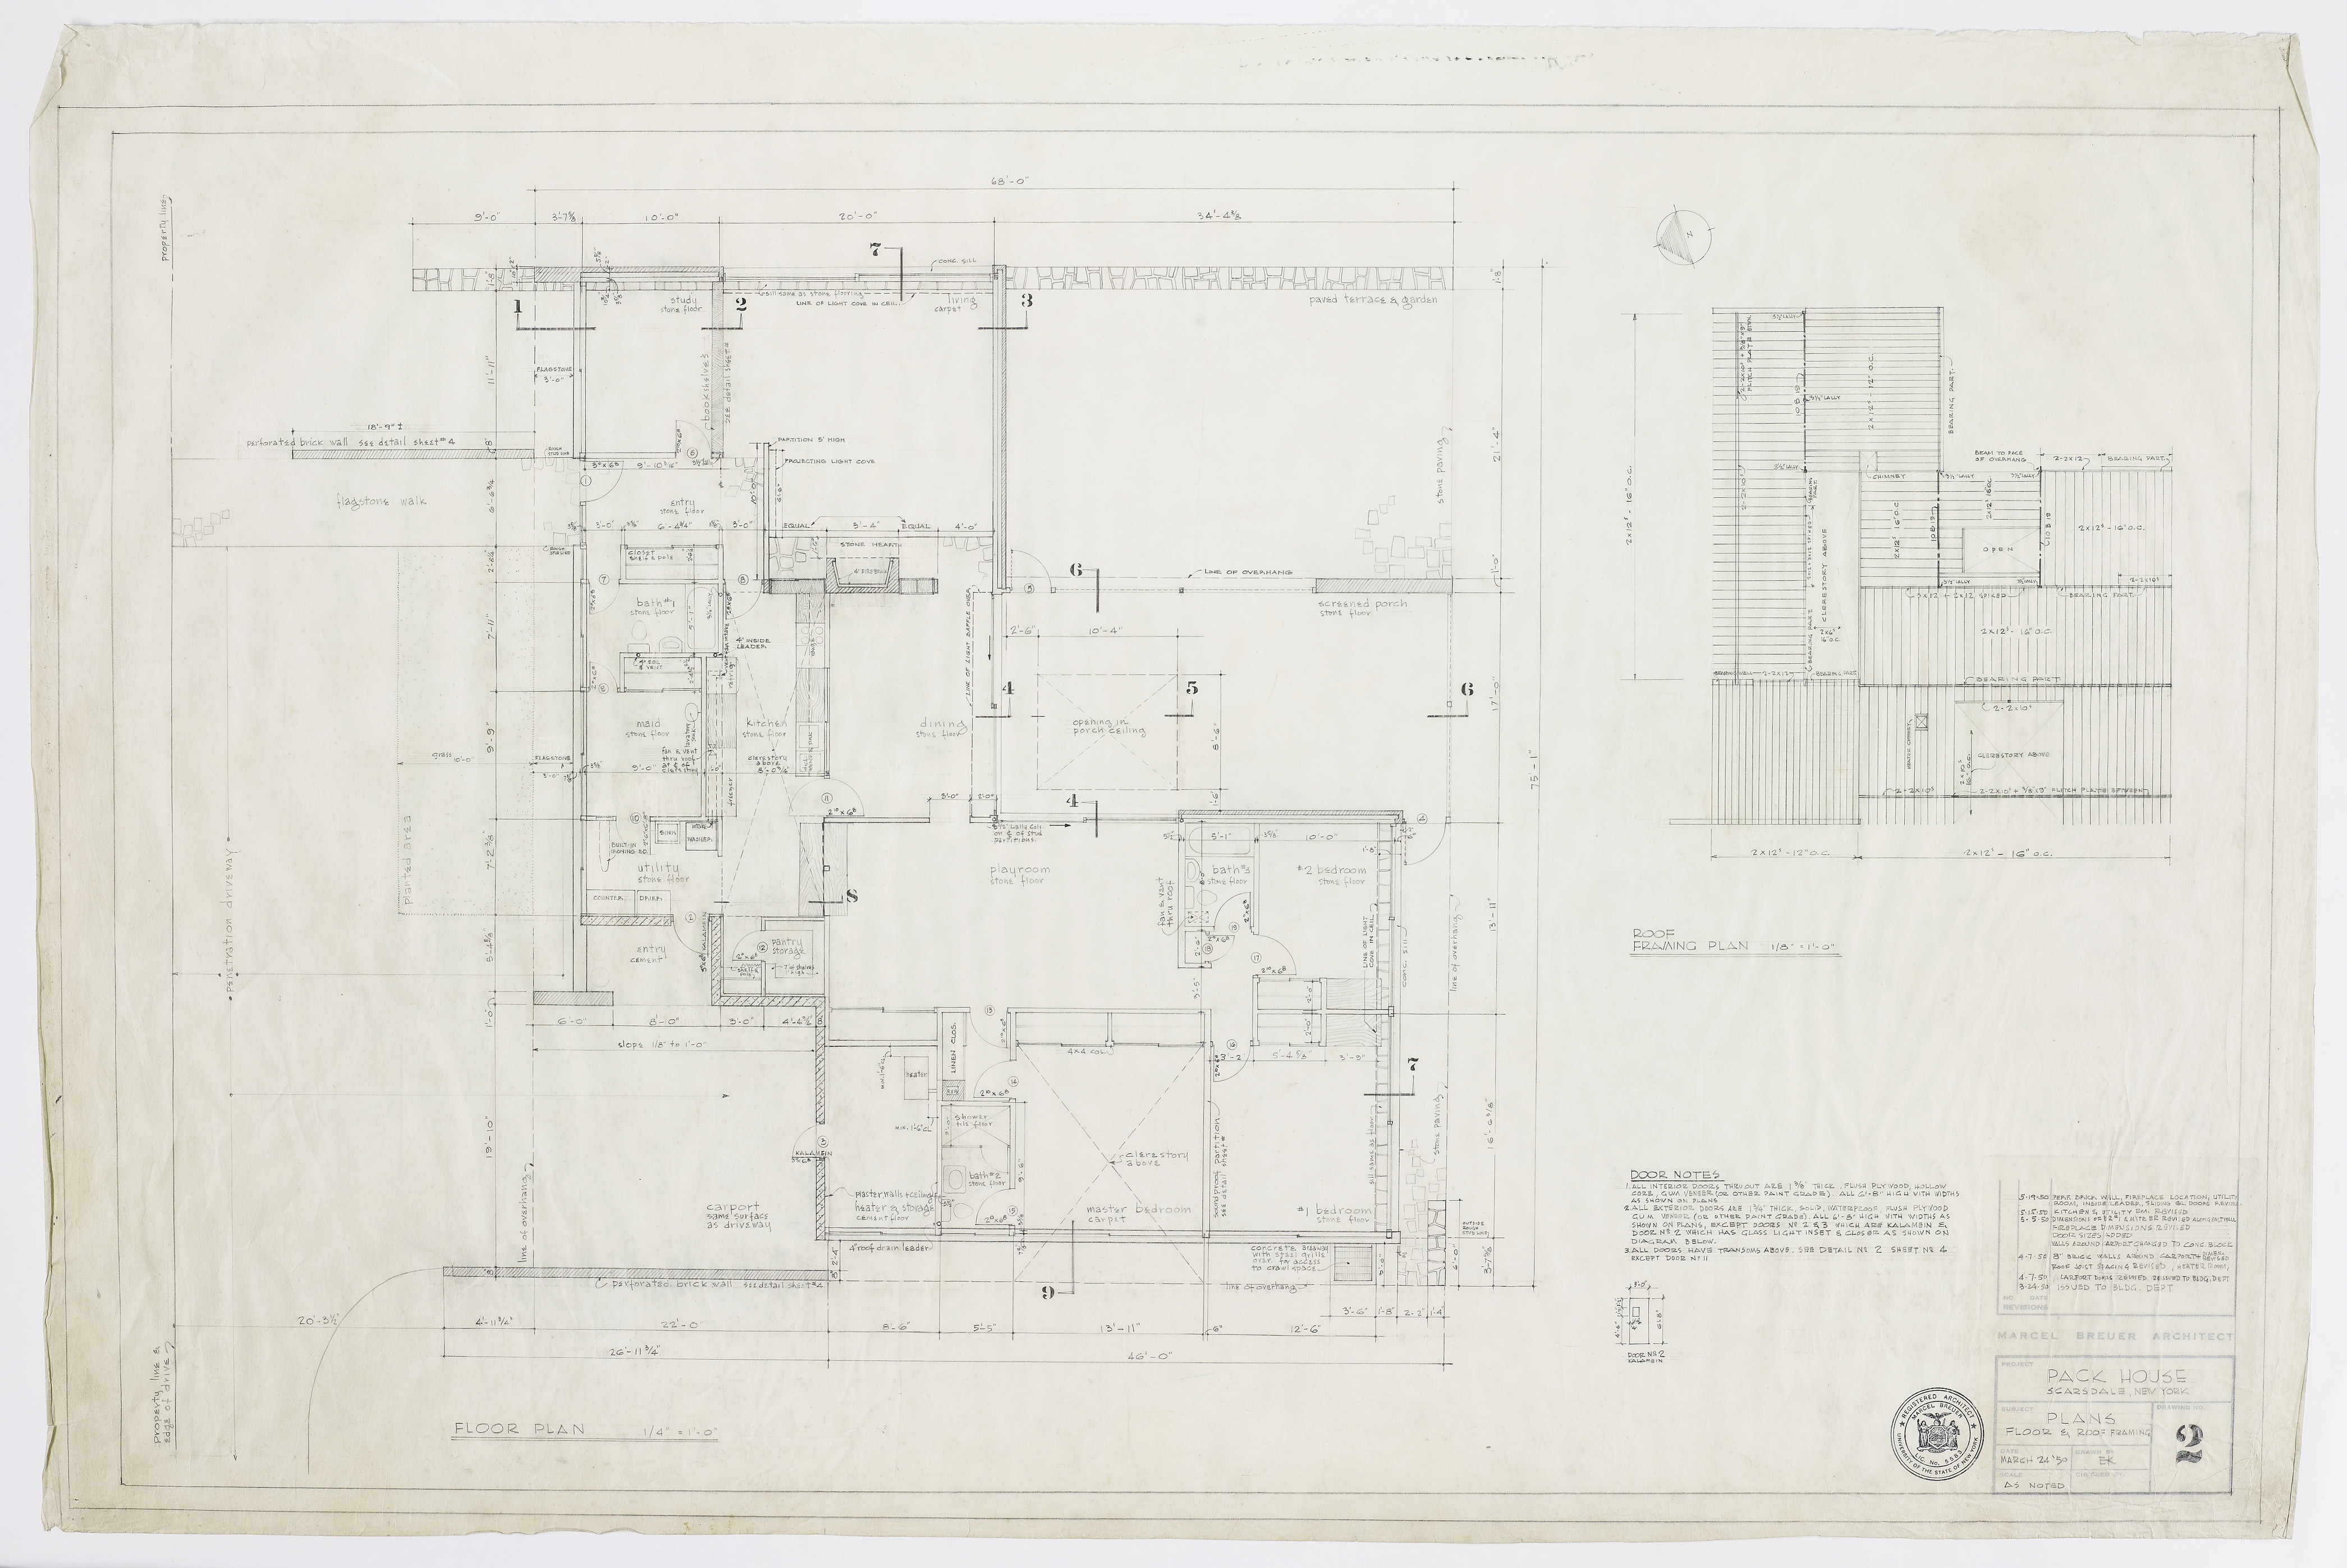 Click to show Plans: Floor and Roof Framing (Dwg. No. 2) 4